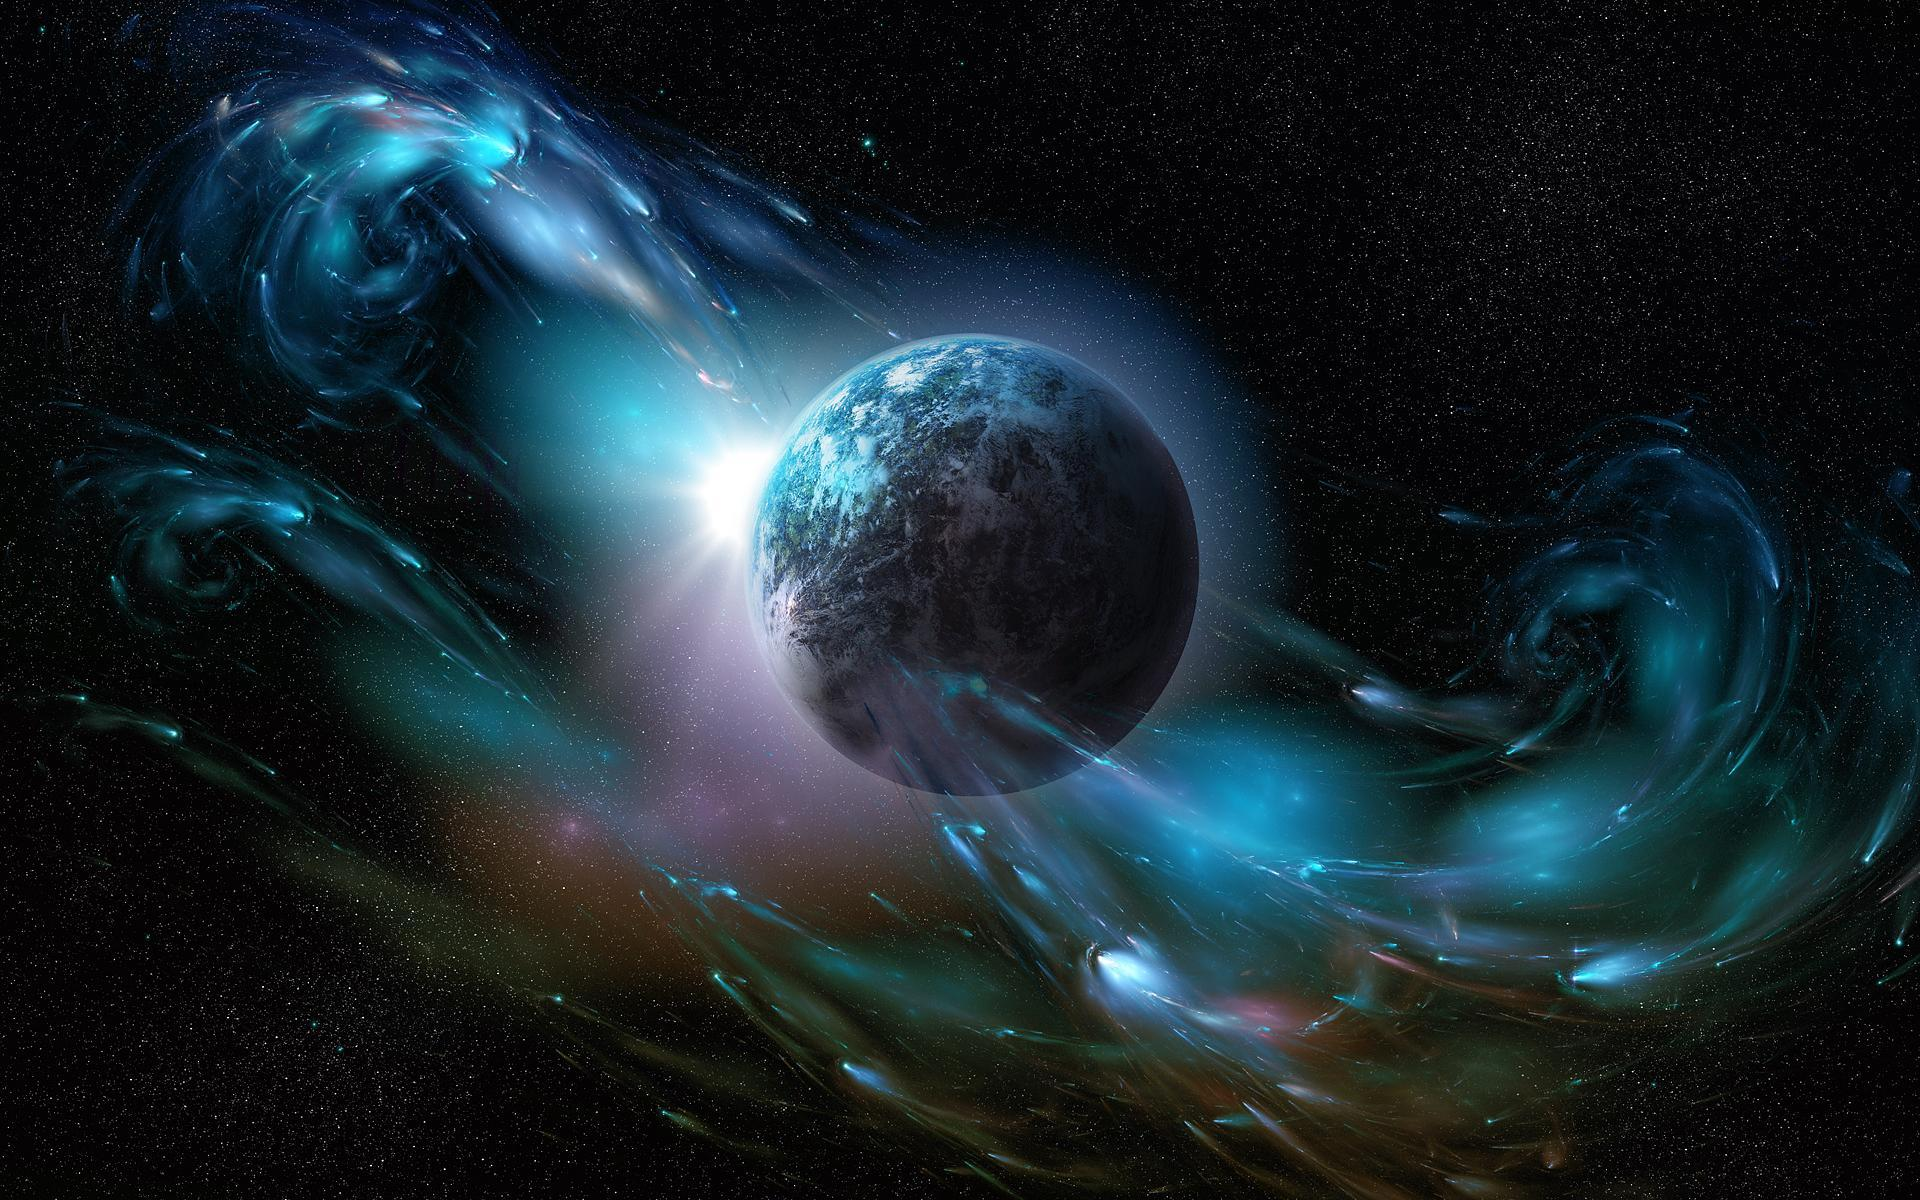 Stardast Space Wallpapers Full Hd For Android Apk Download